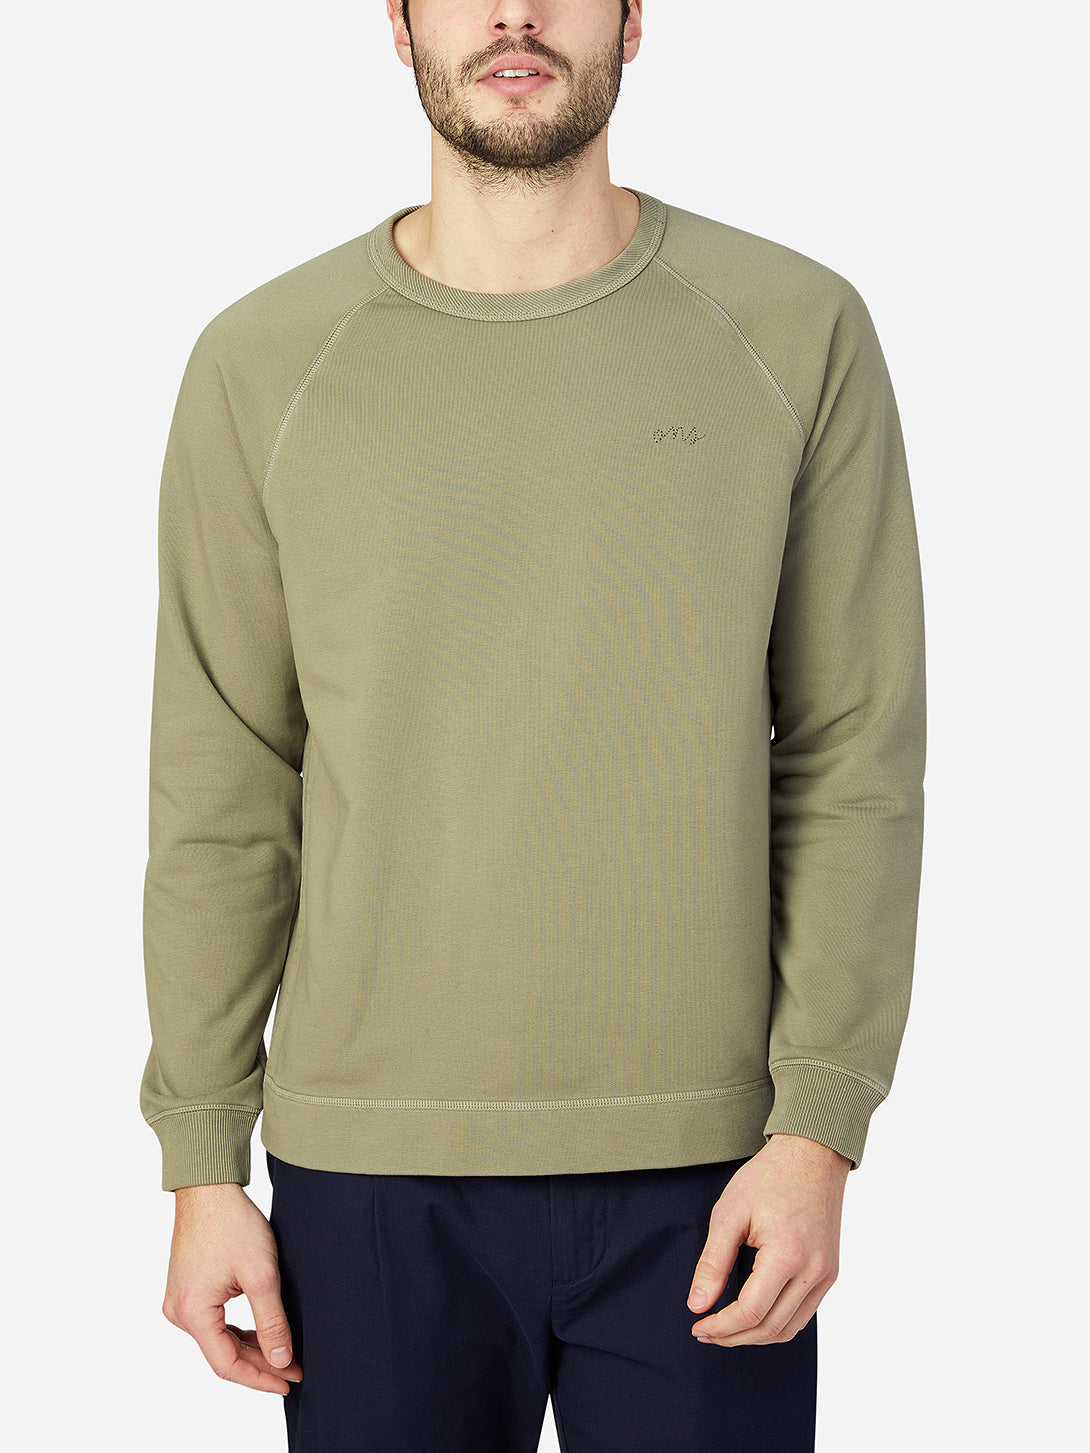 black friday deals ONS Clothing Men's Sweatshirt in LIGHT OLIVE GREEN